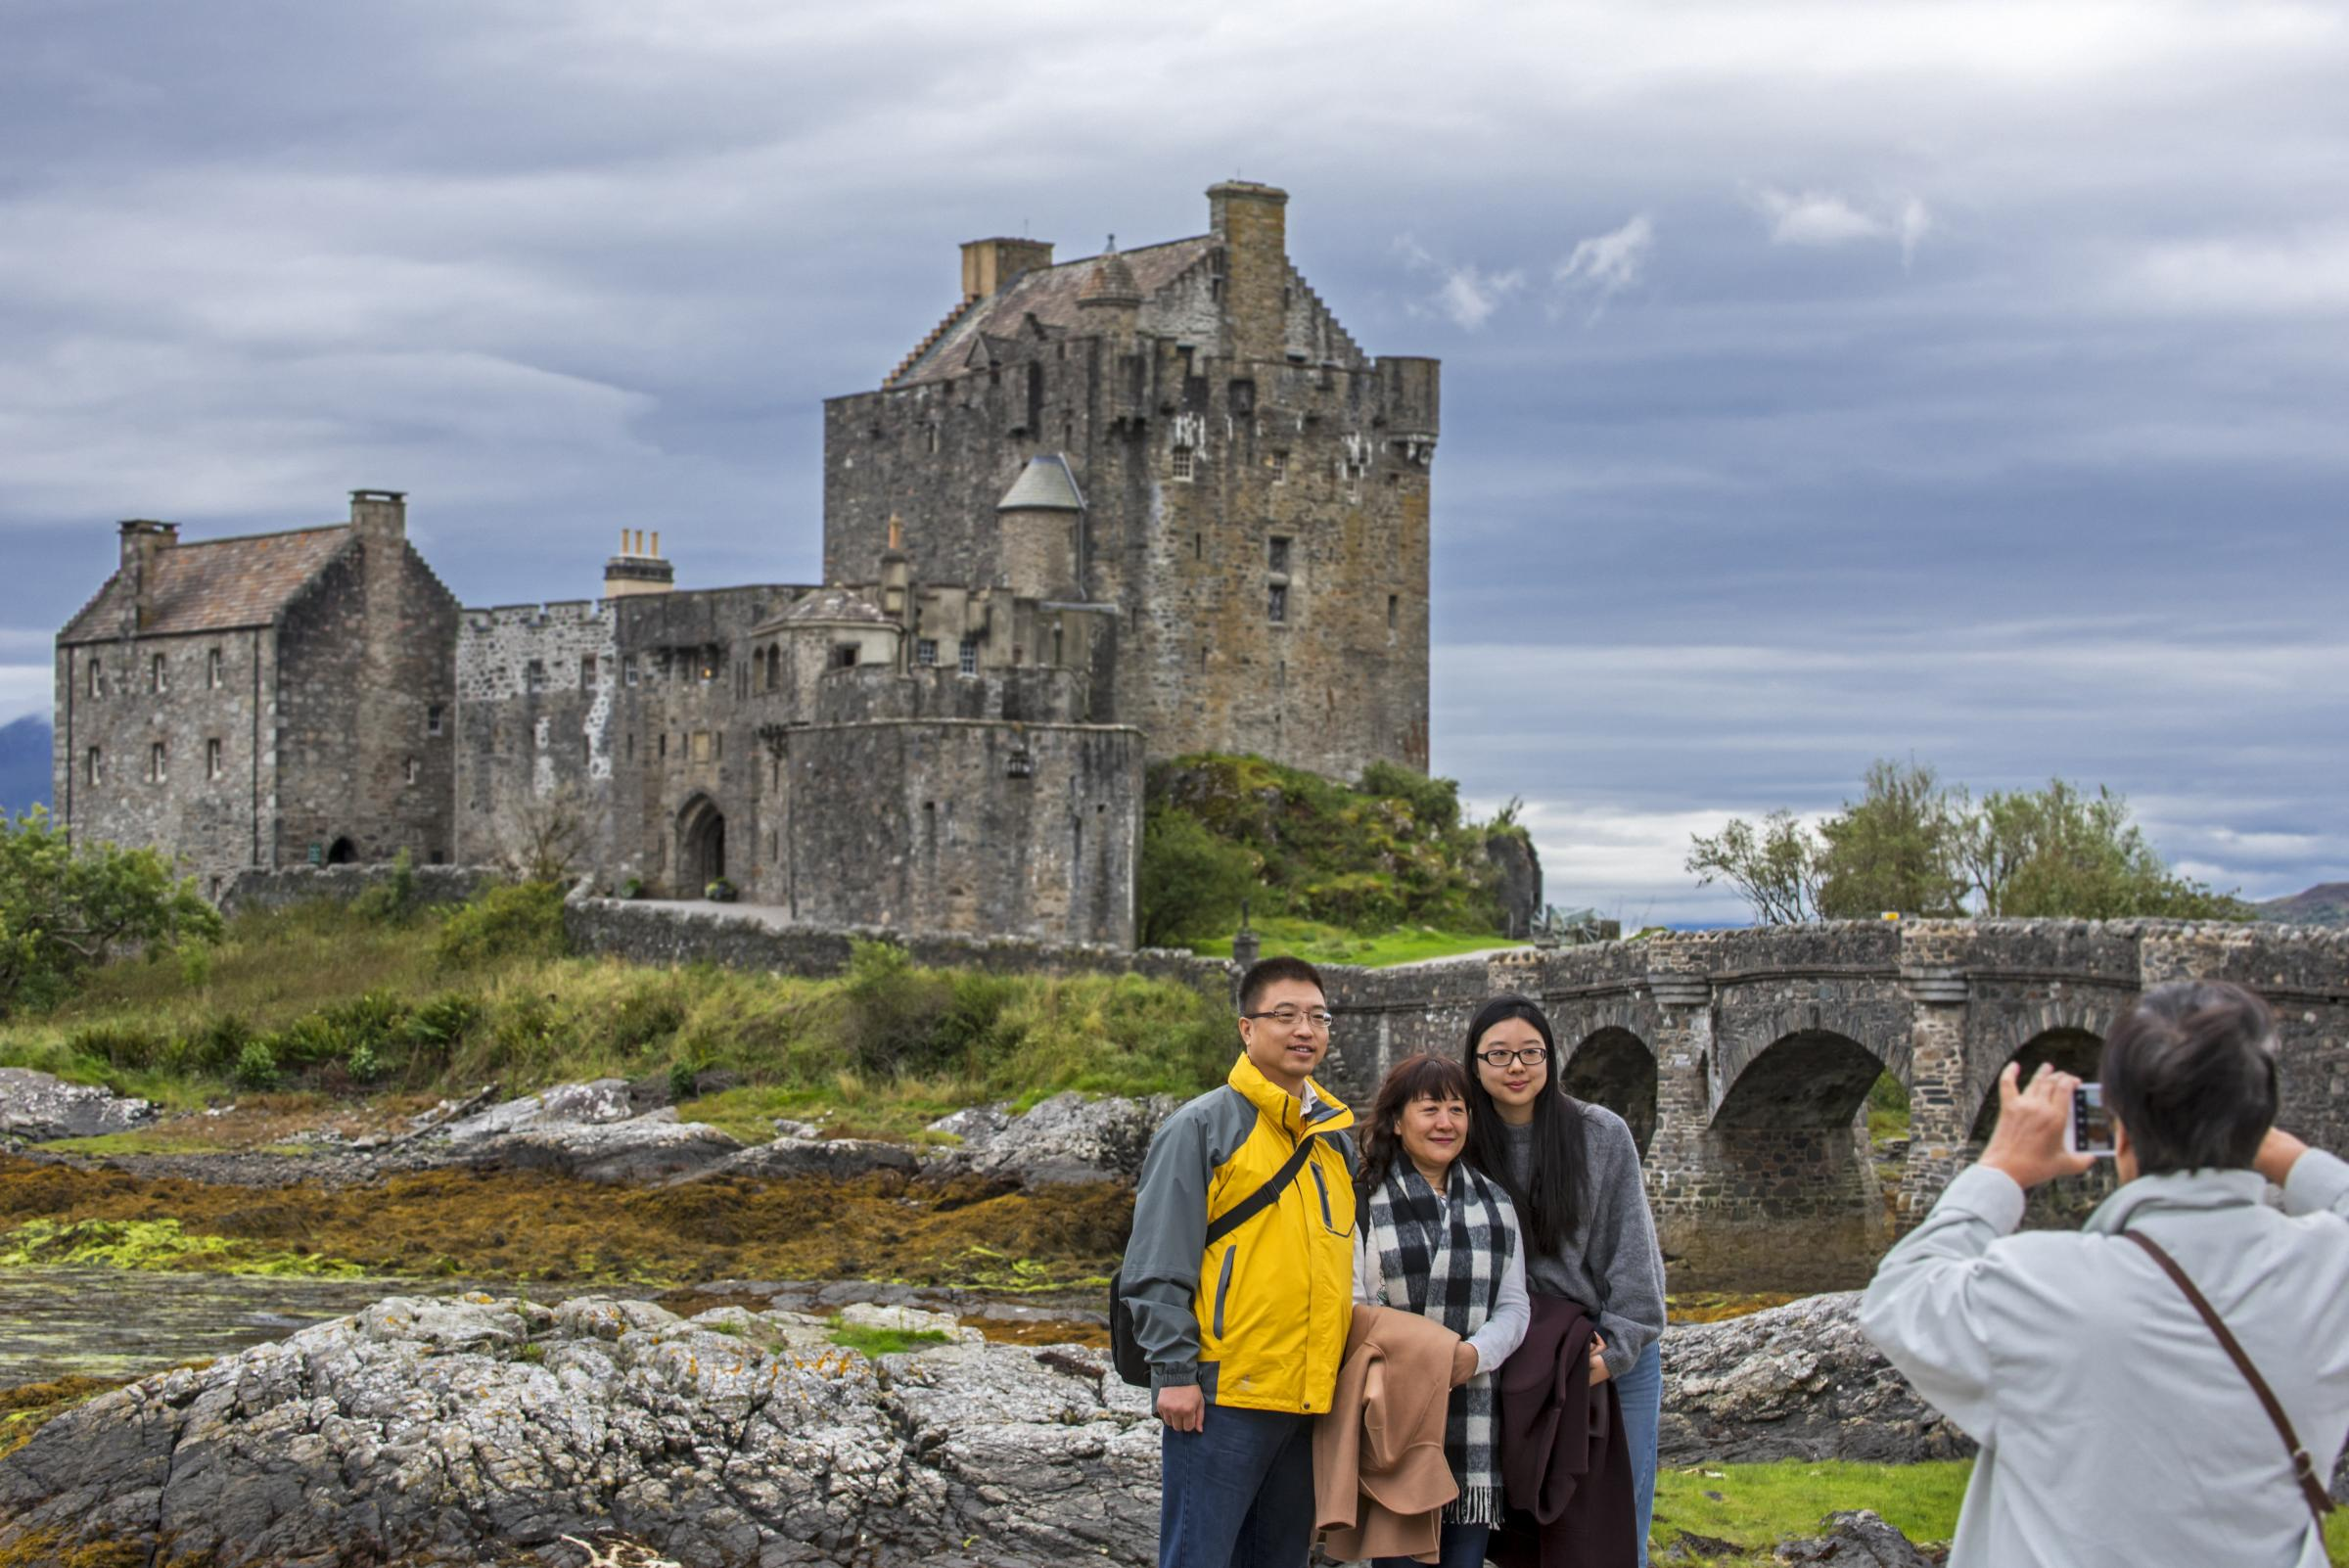 Scotland's rich history and beautiful castles attract masses of tourists – but rural Scotland is not always welcoming in terms of facilities